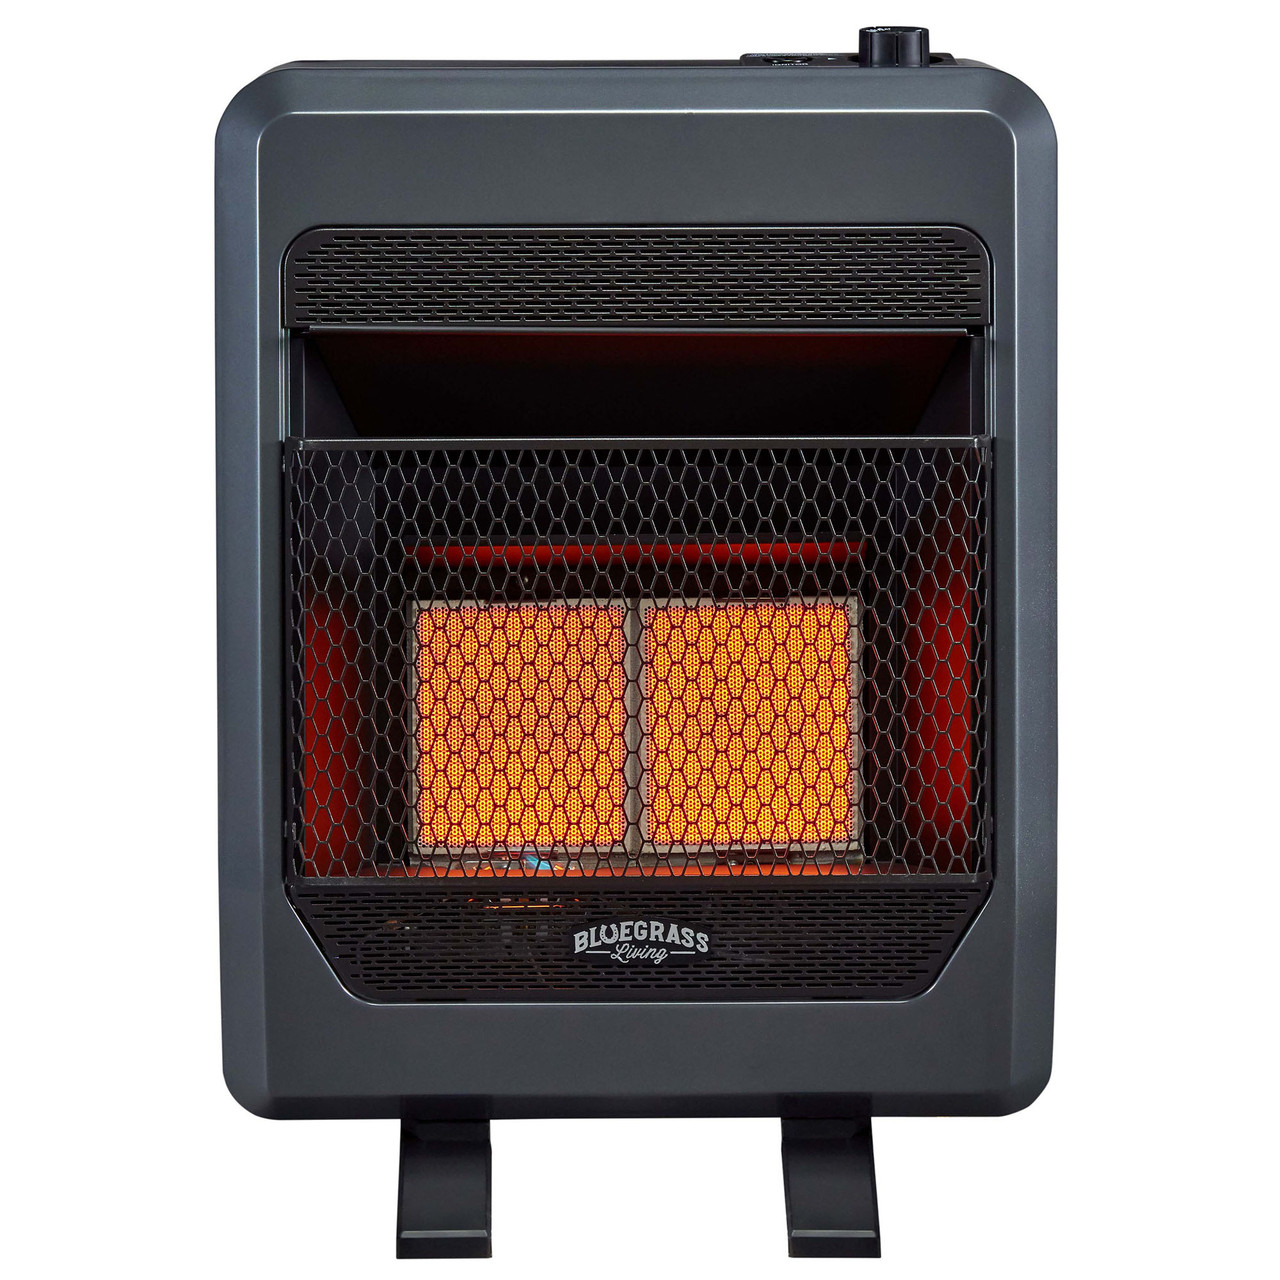 Bluegrass Living Propane Gas Vent Free Infrared Gas Space Heater With Blower And Base Feet 18 000 Btu T Stat Control Model B18tpir Bb Factory Buys Direct